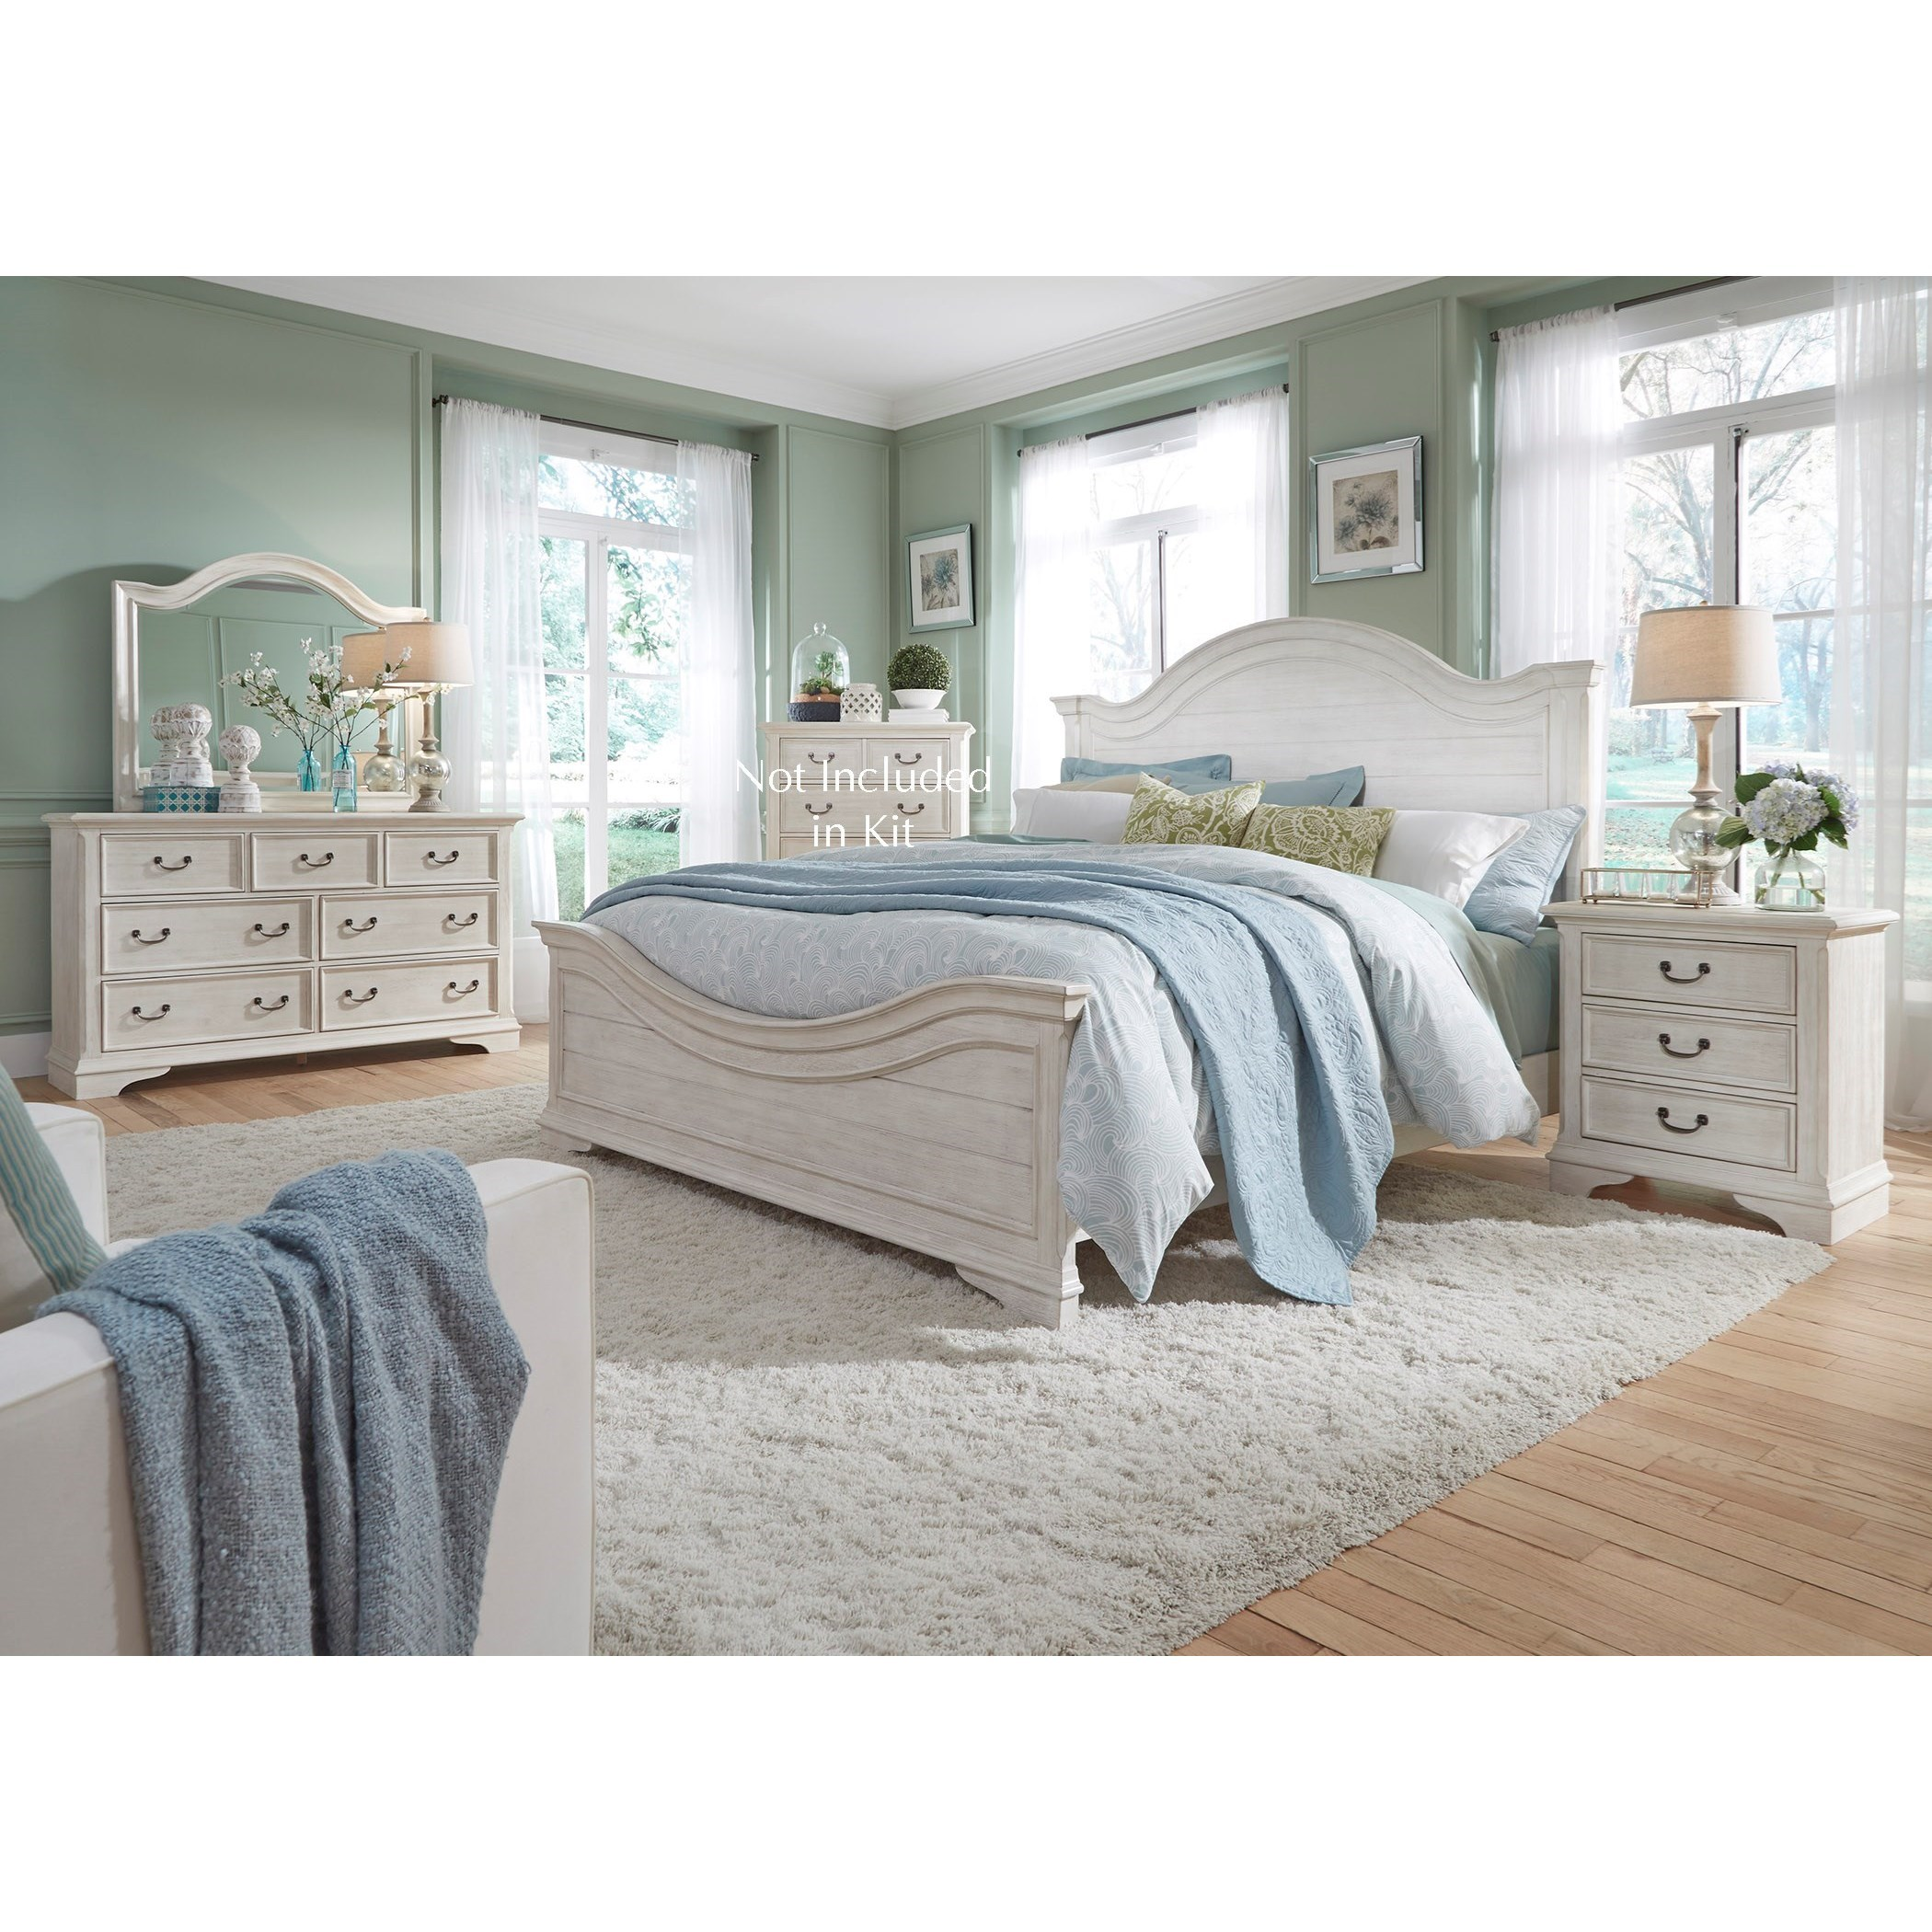 Bayside Bedroom Queen Bedroom Group by Liberty Furniture at Catalog Outlet